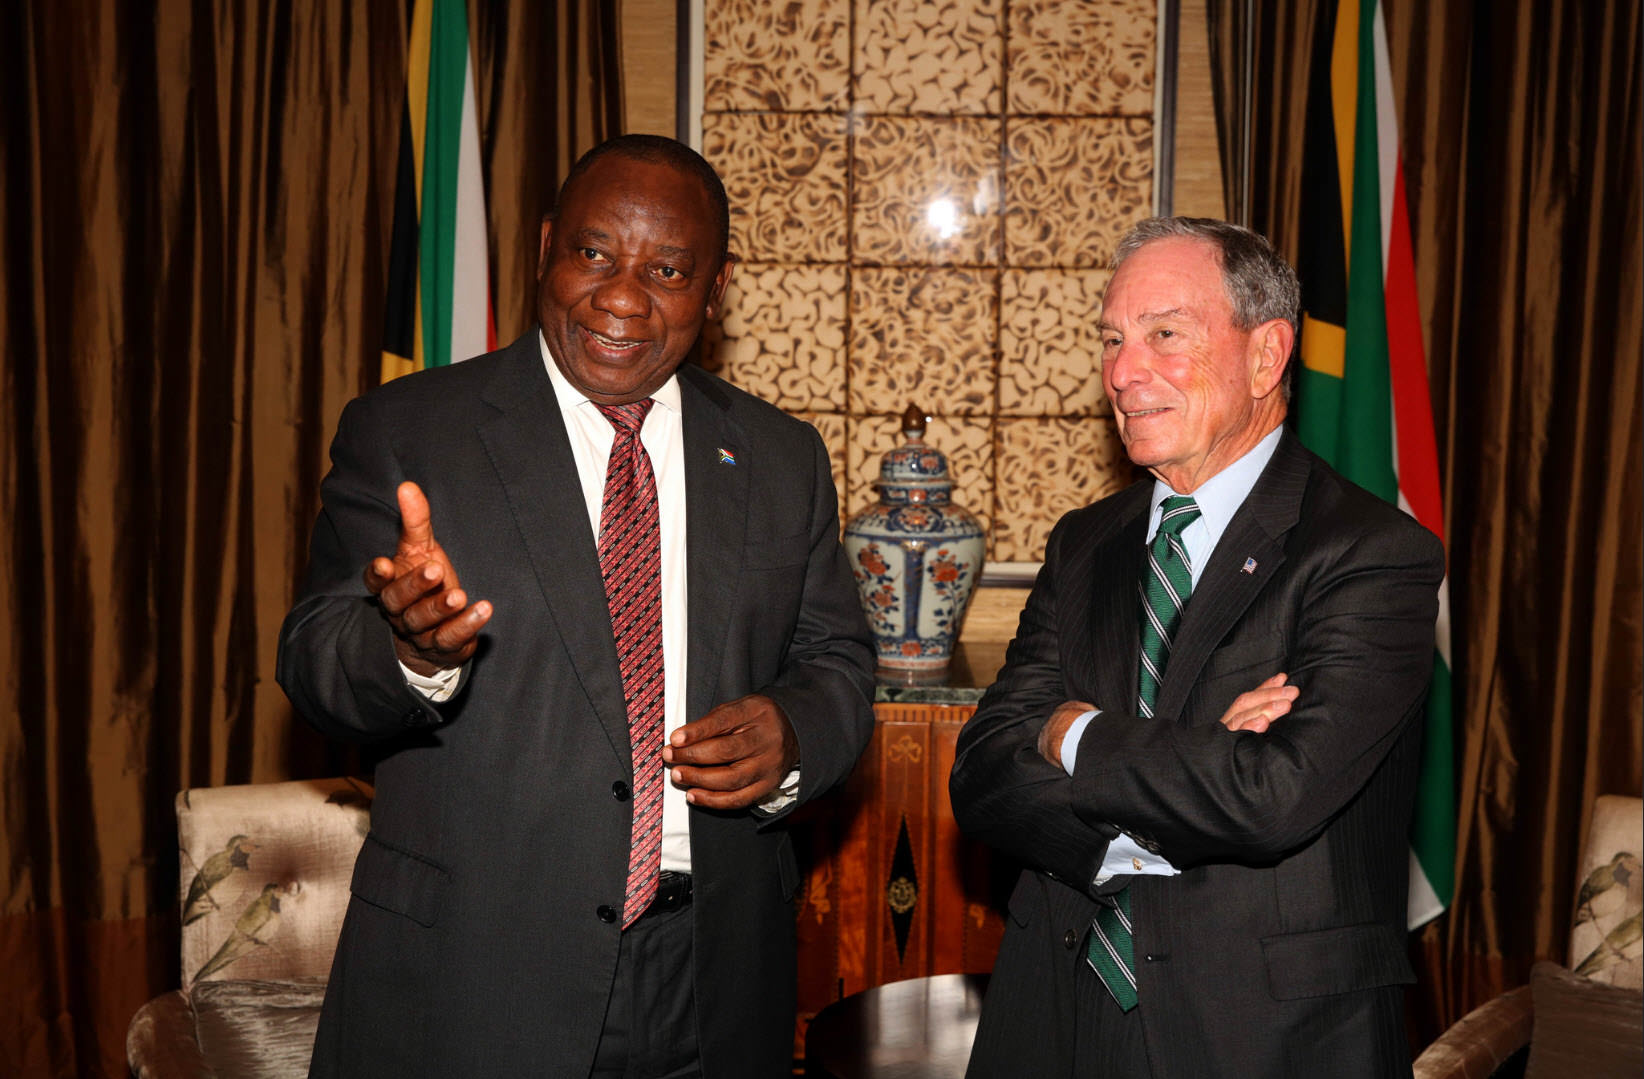 Michael Bloomberg with Cyril Ramaphosa